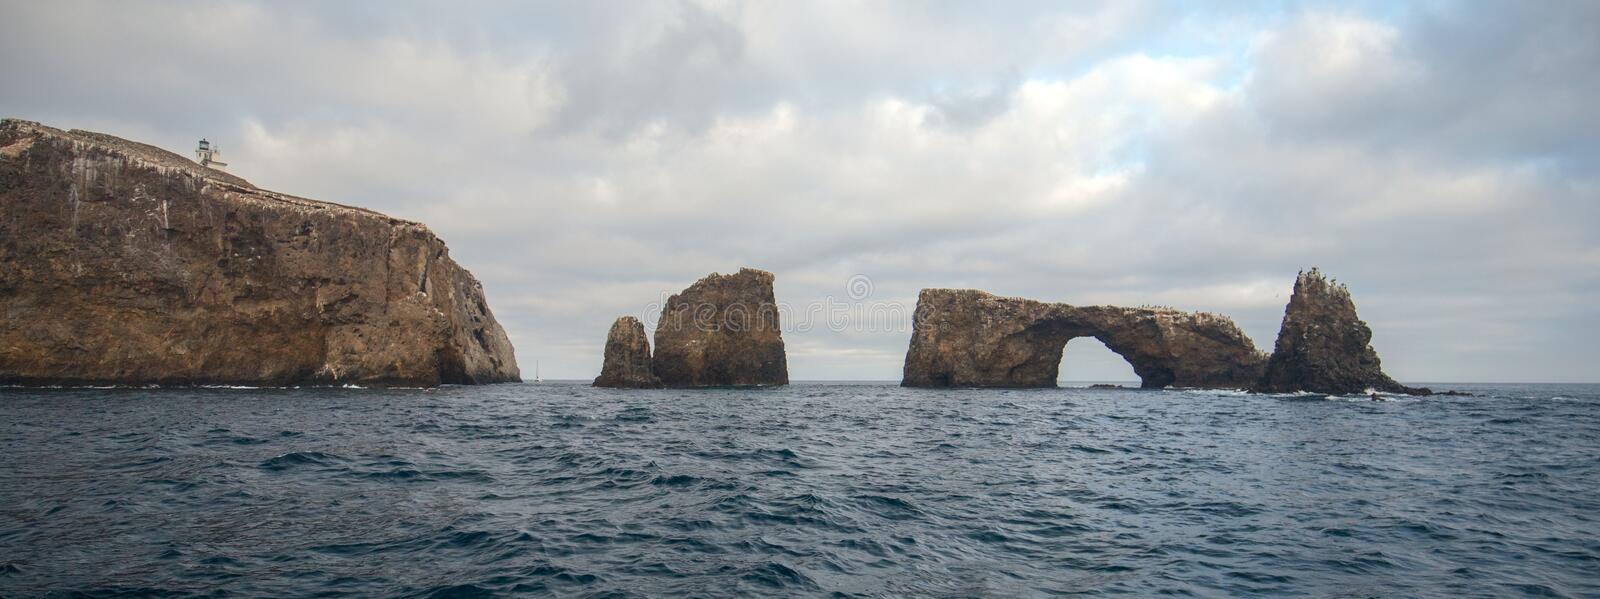 Arch Rock and Lighthouse of Anacapa Island of the Channel Islands National Park off the gold coast of California United States.  stock photo